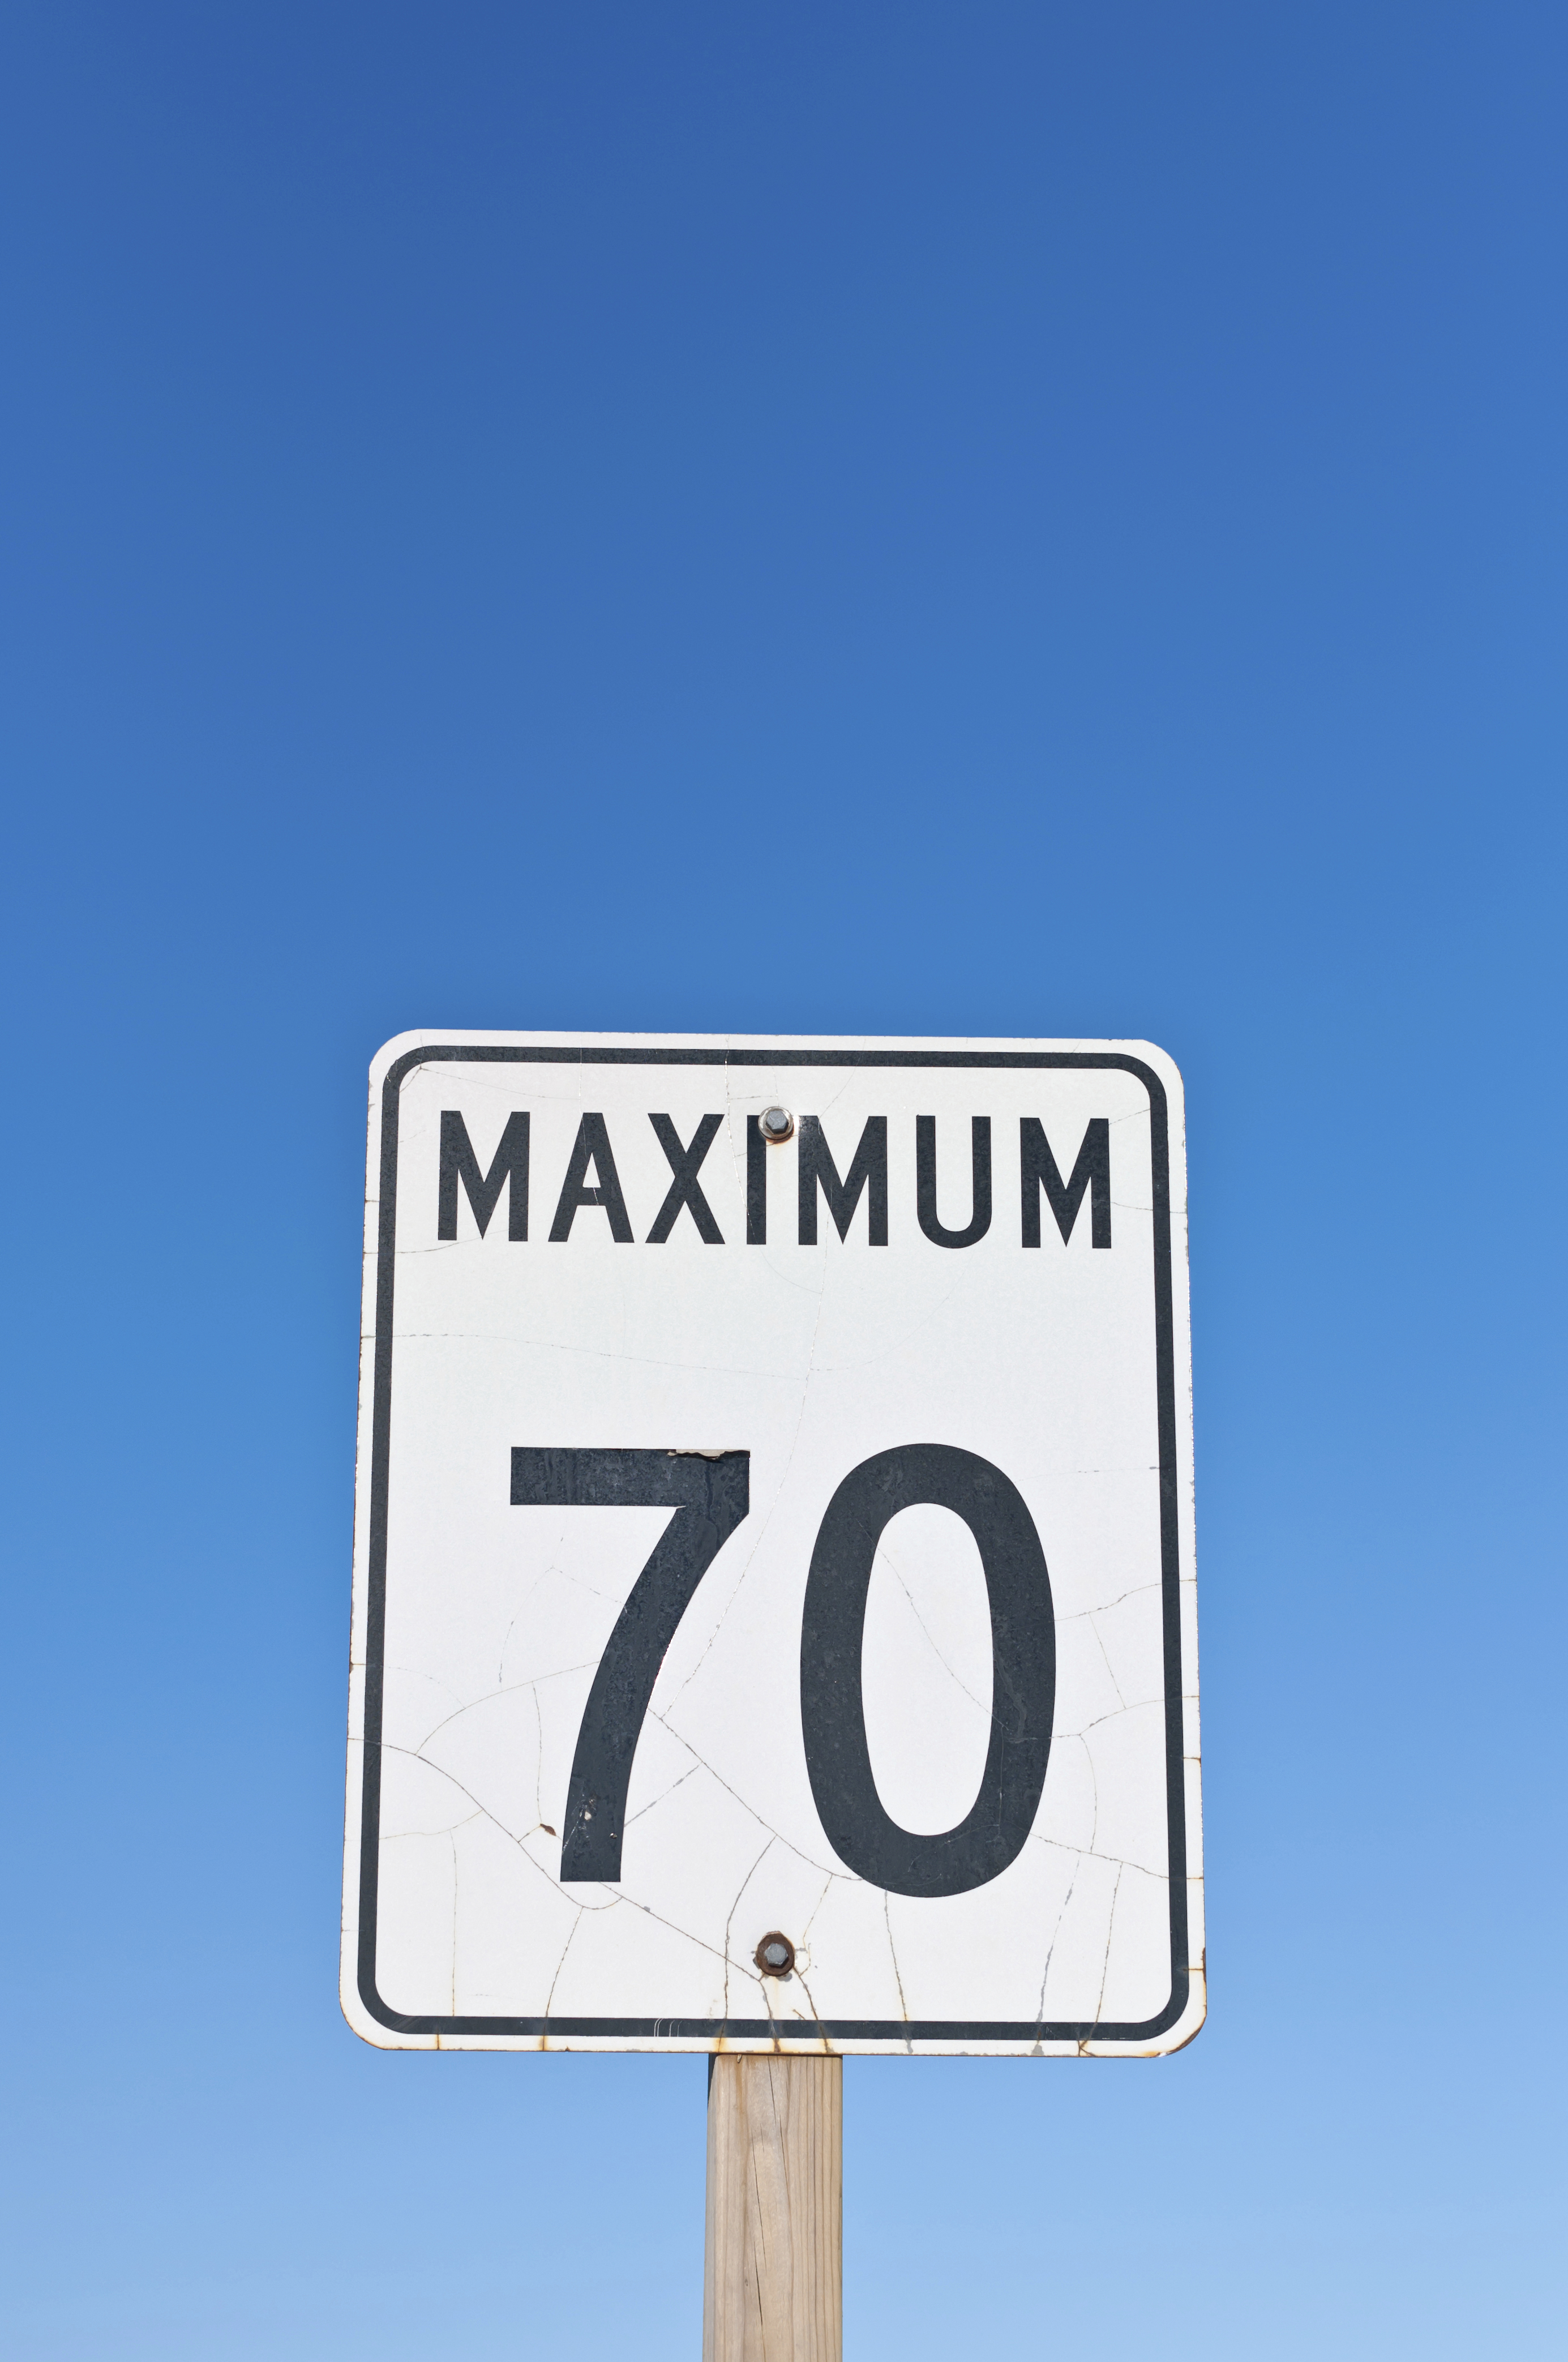 70mph A traffic sign with a cracked surface reads Maximum 70